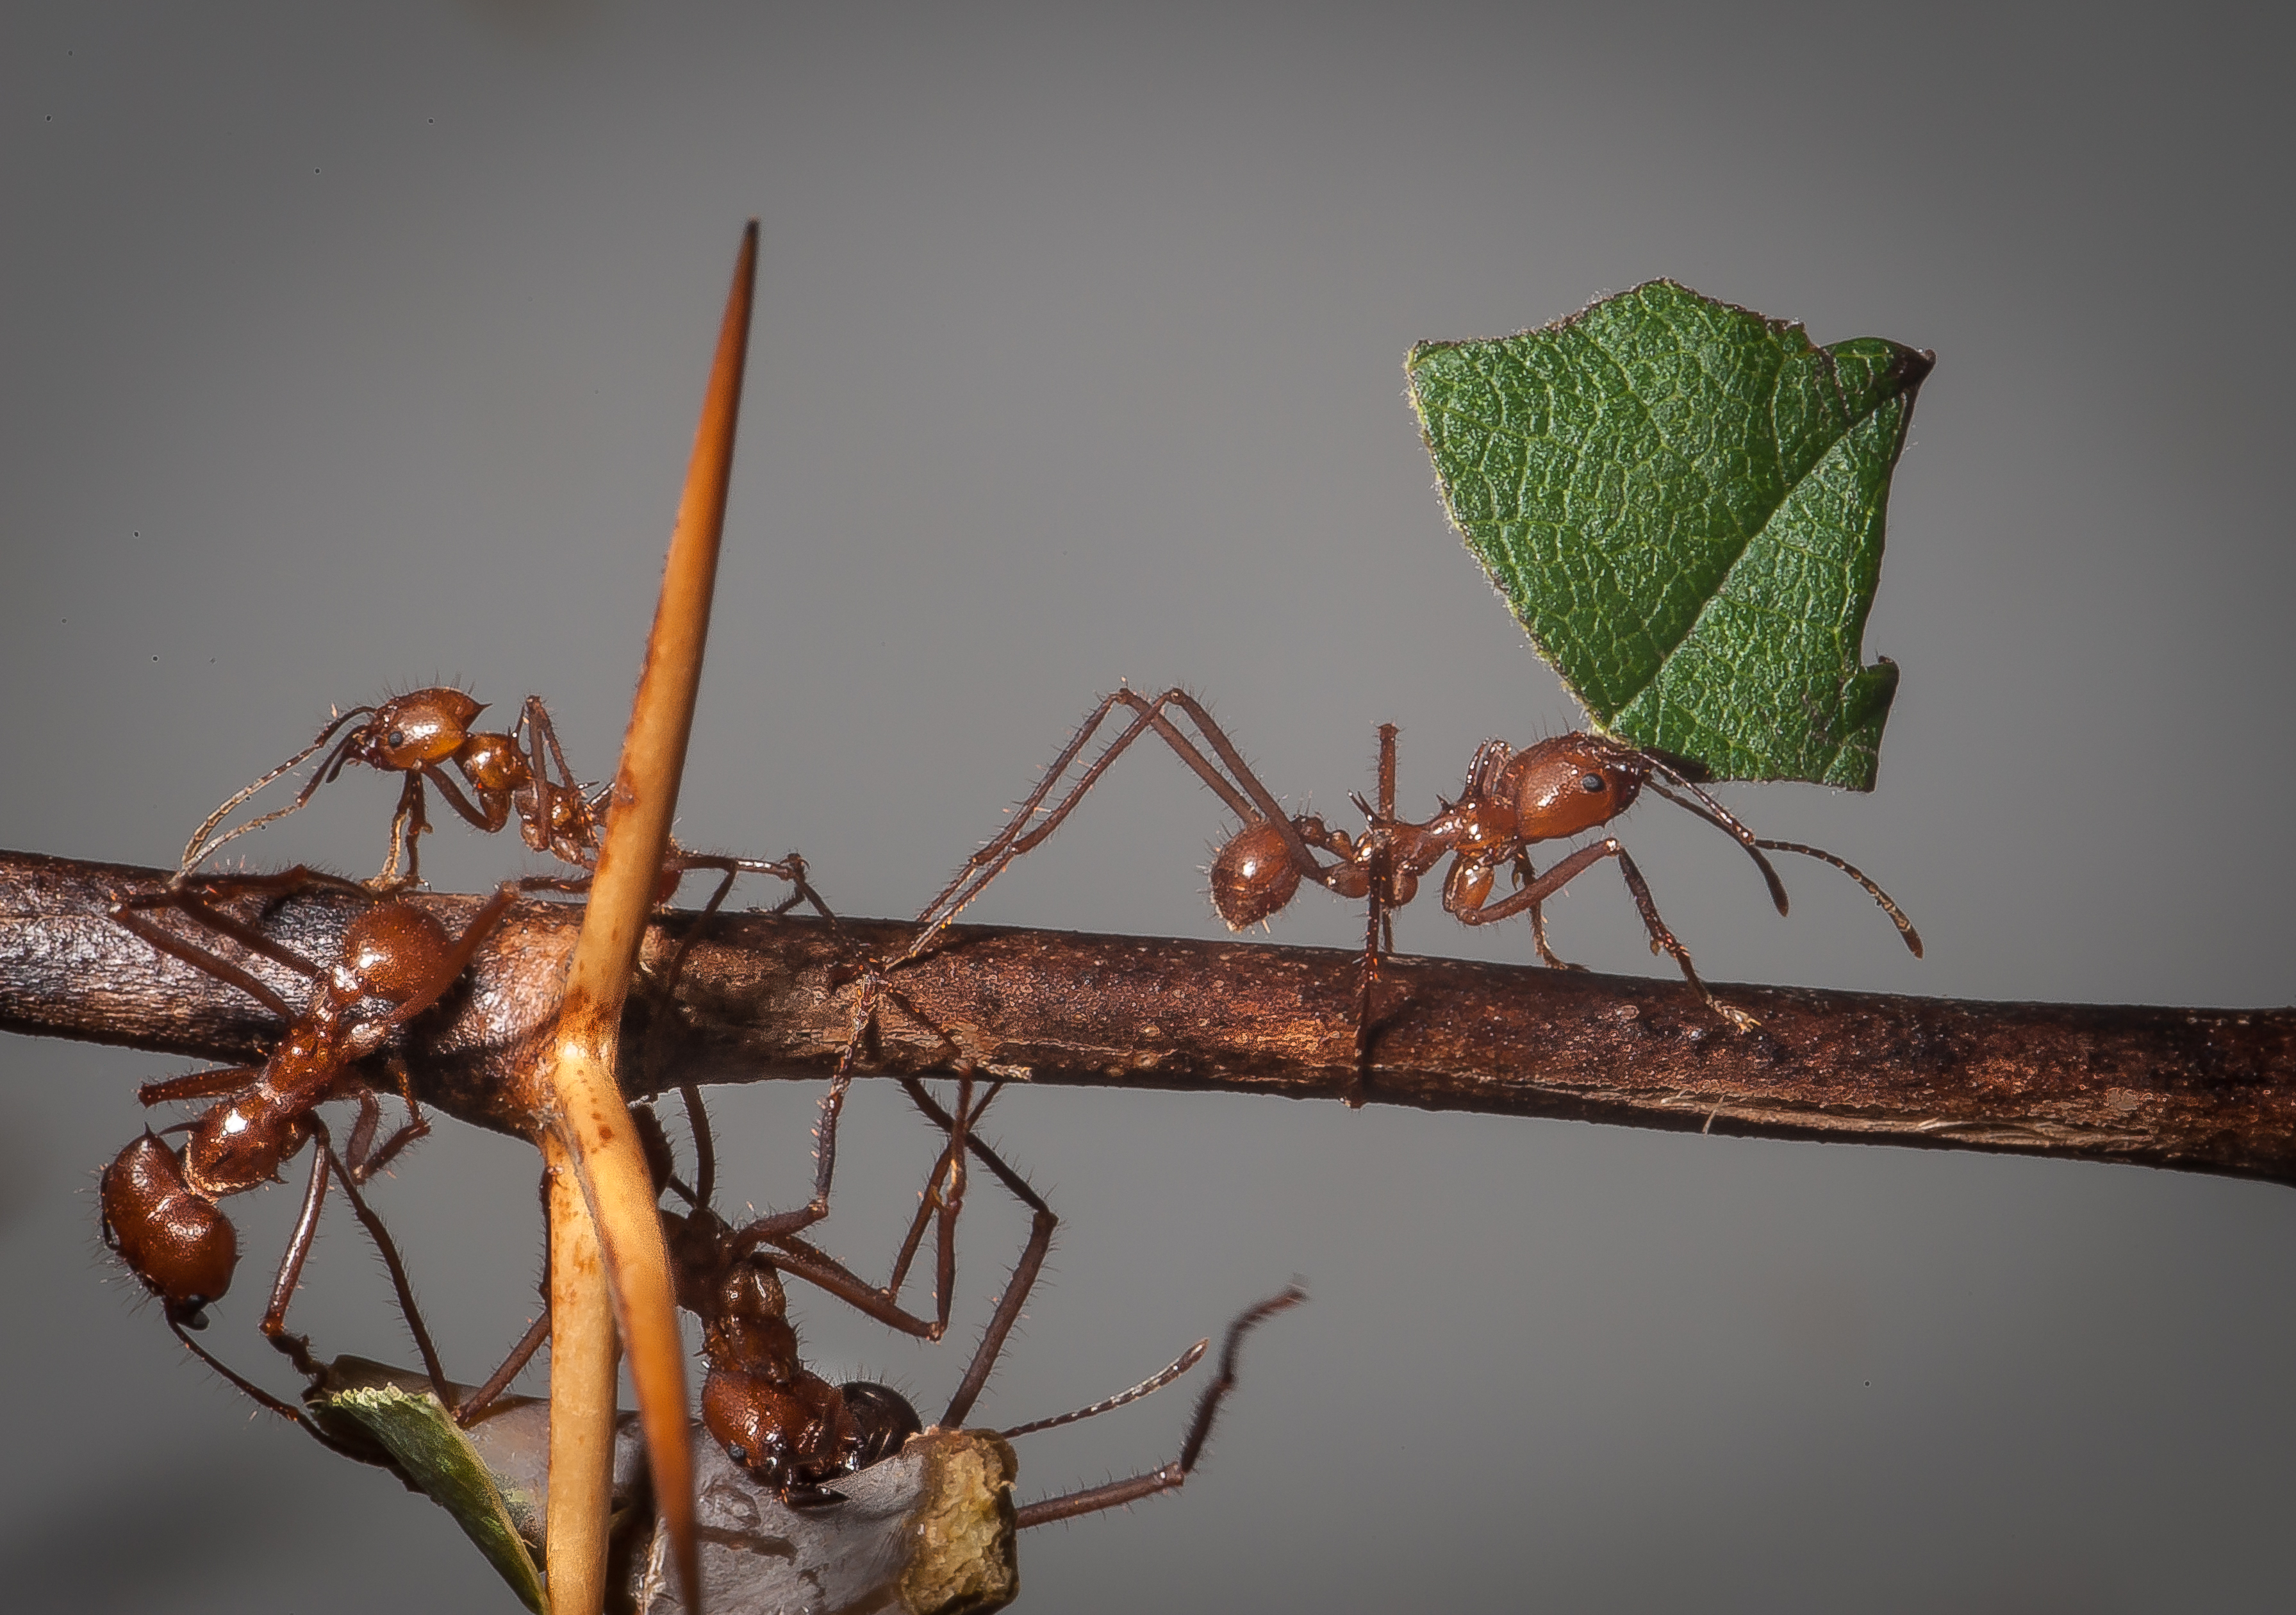 Leafcutter ant - Wikipedia